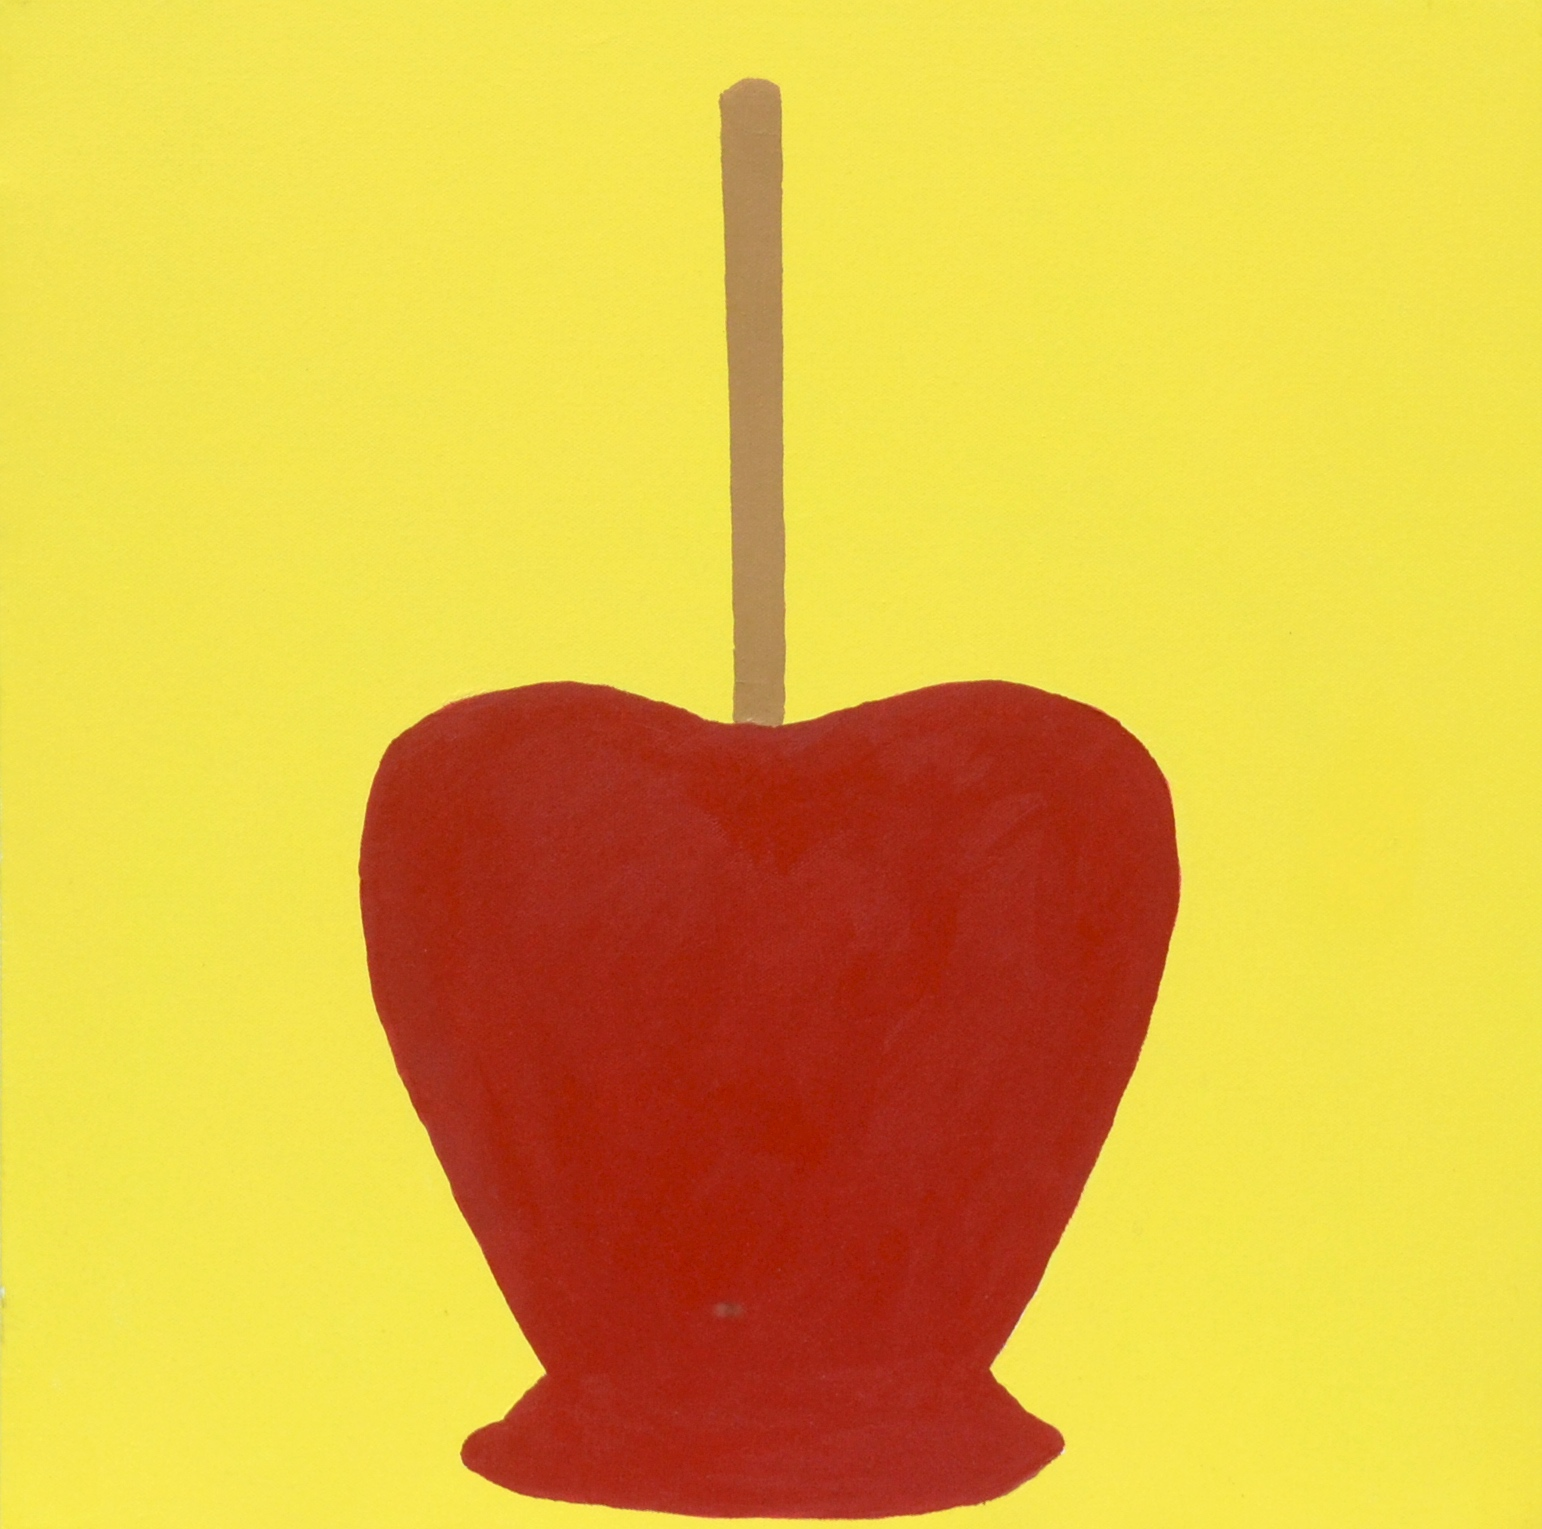 yellow, candy apple